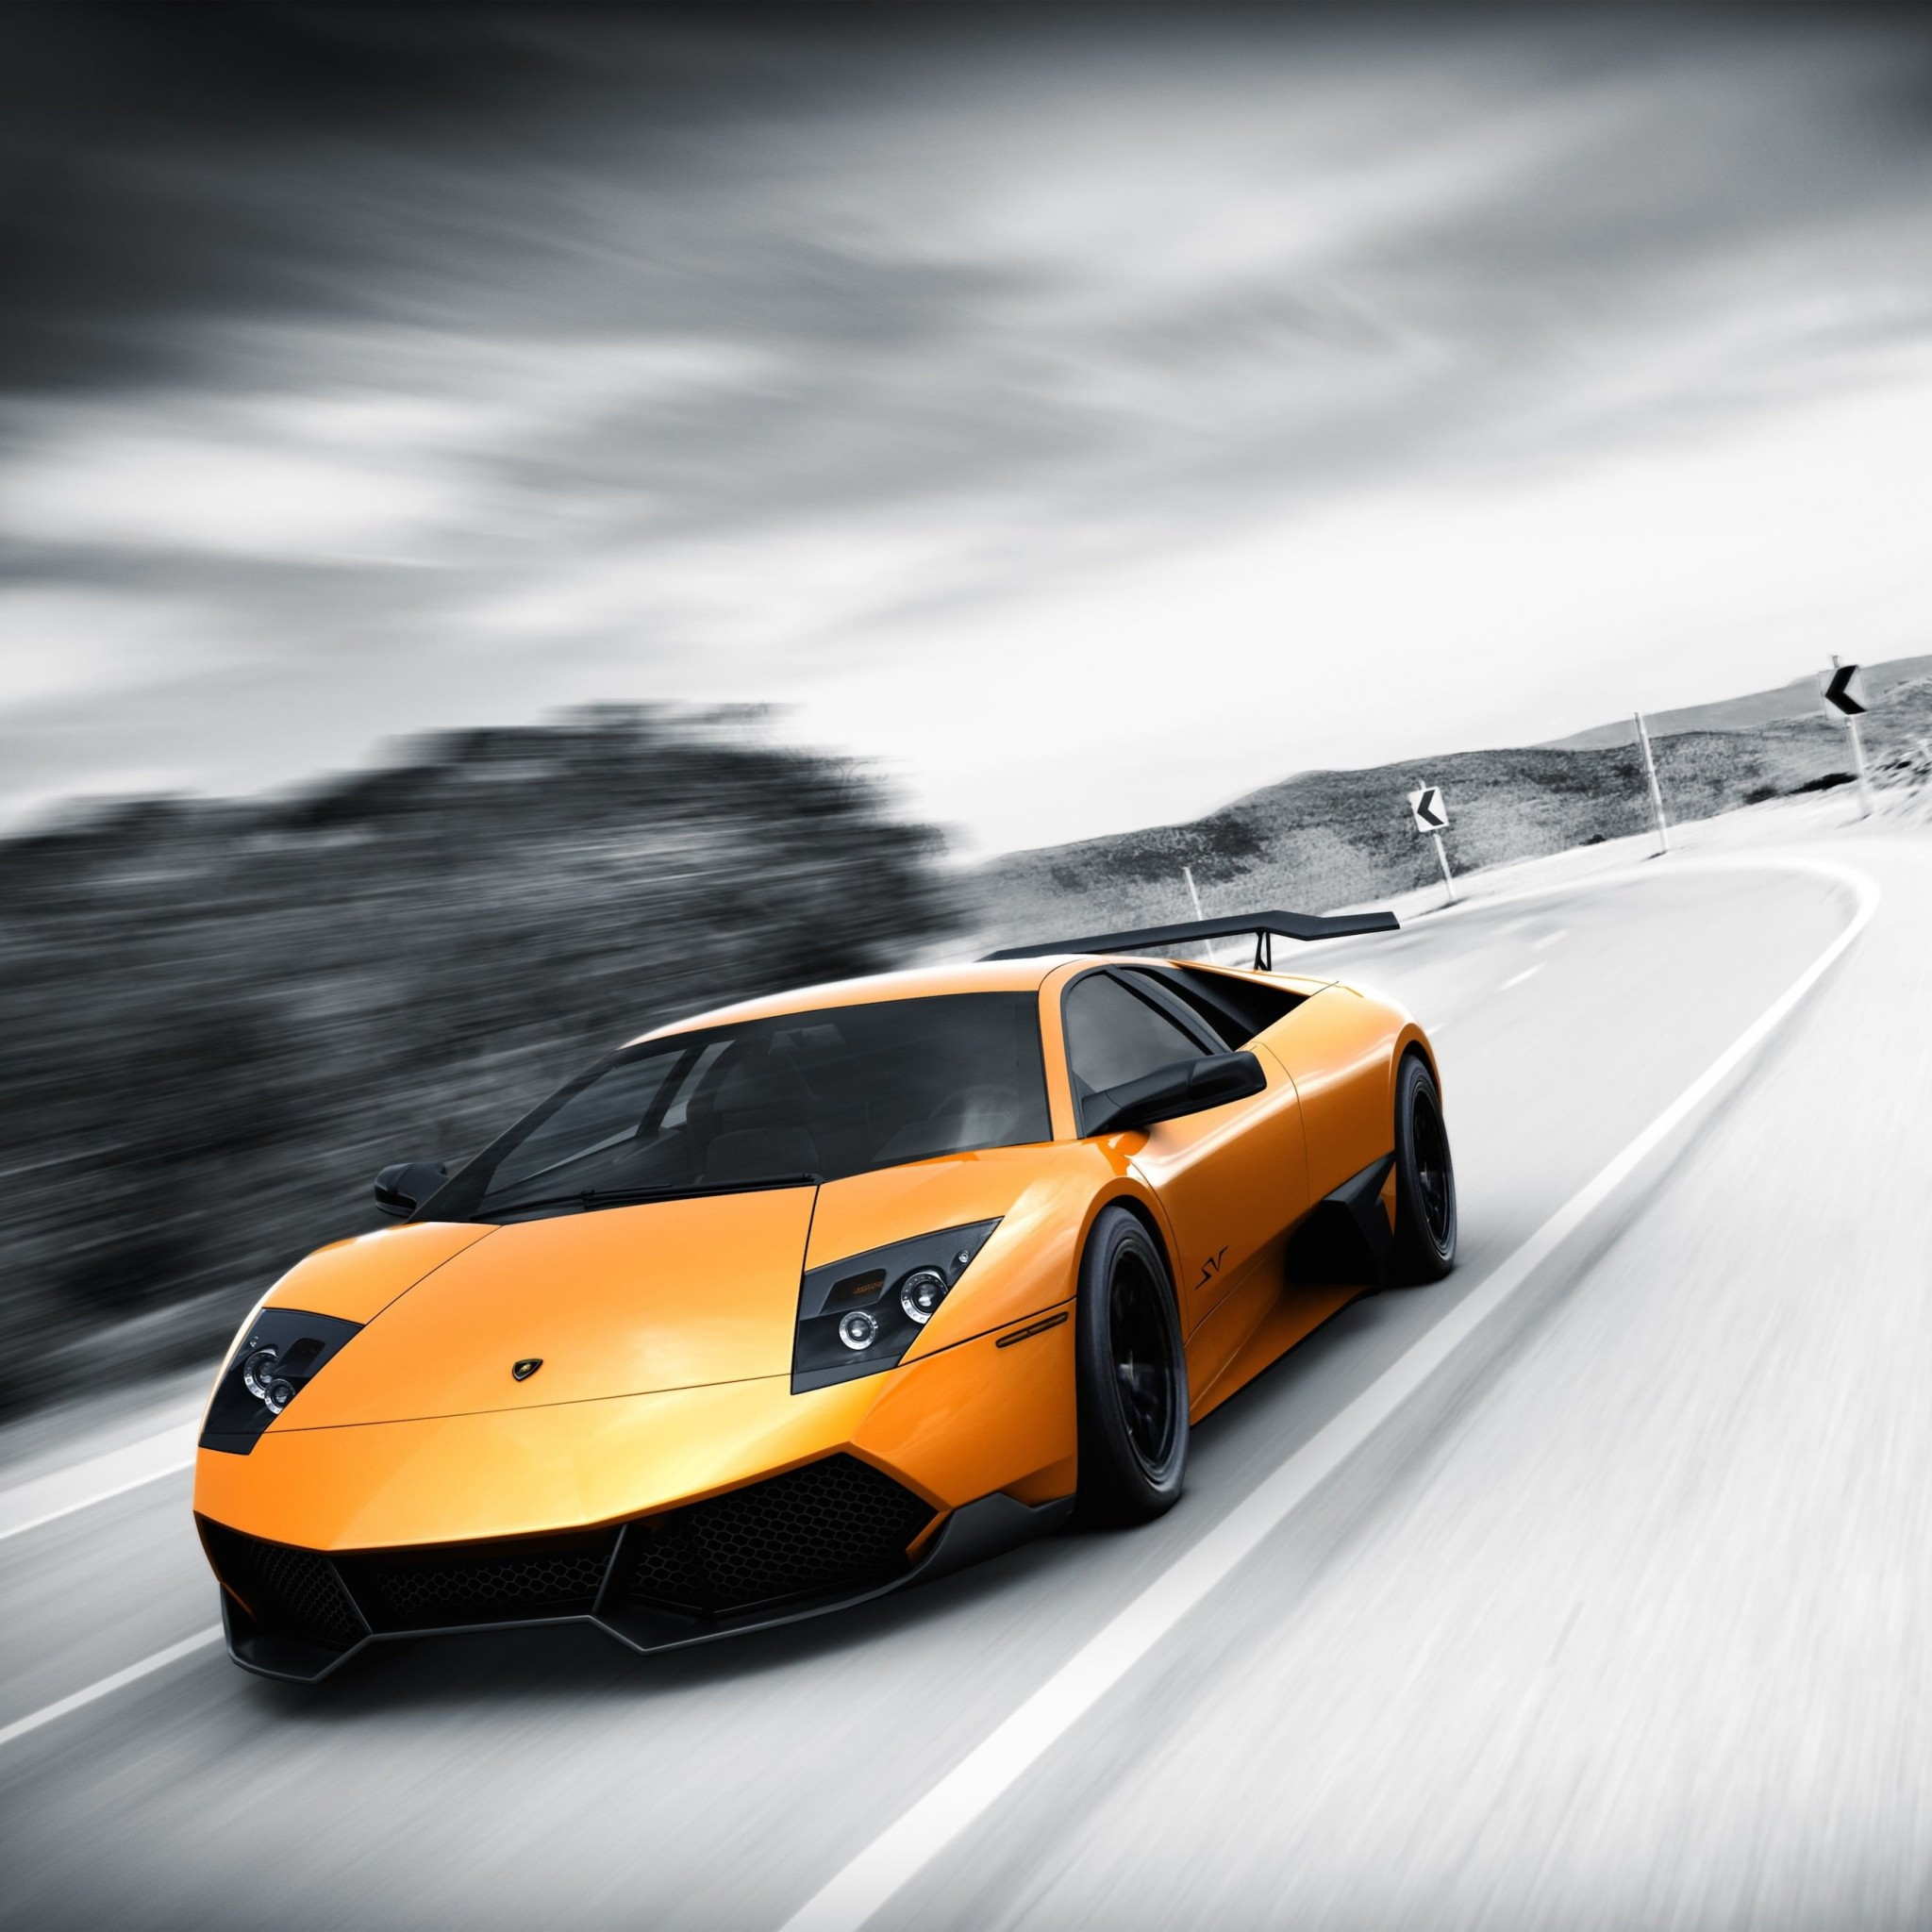 Lamborghini Murcielago LP670 Wallpaper for Google Nexus 9